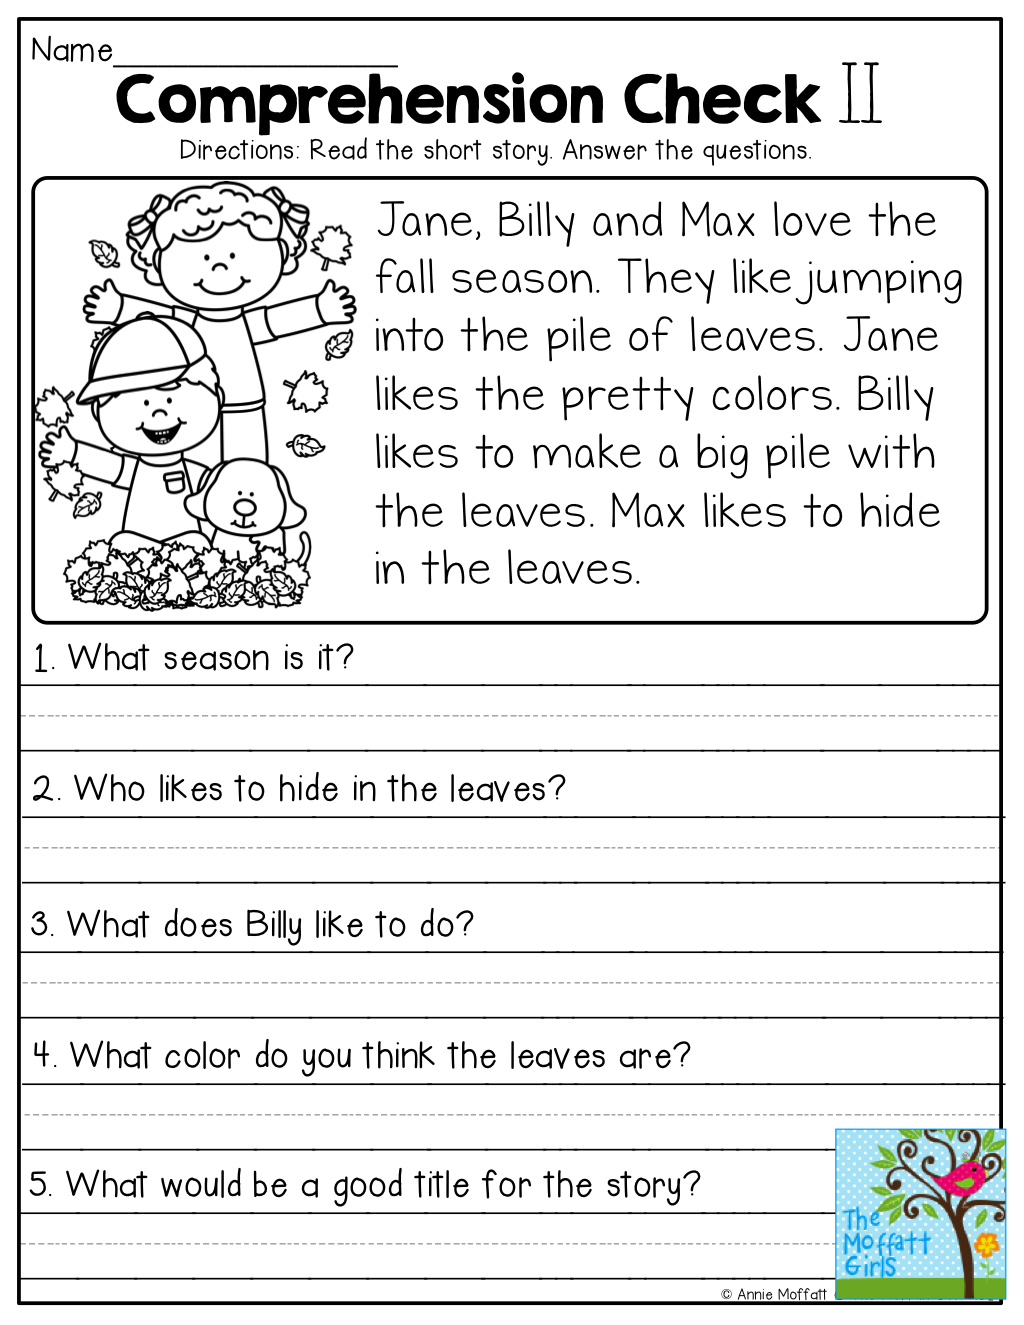 Uncategorized Reading And Comprehension Worksheets For Grade 3 comprehension checks and so many more useful printables best of read the simple story answer questions tons great to help with grade level skills